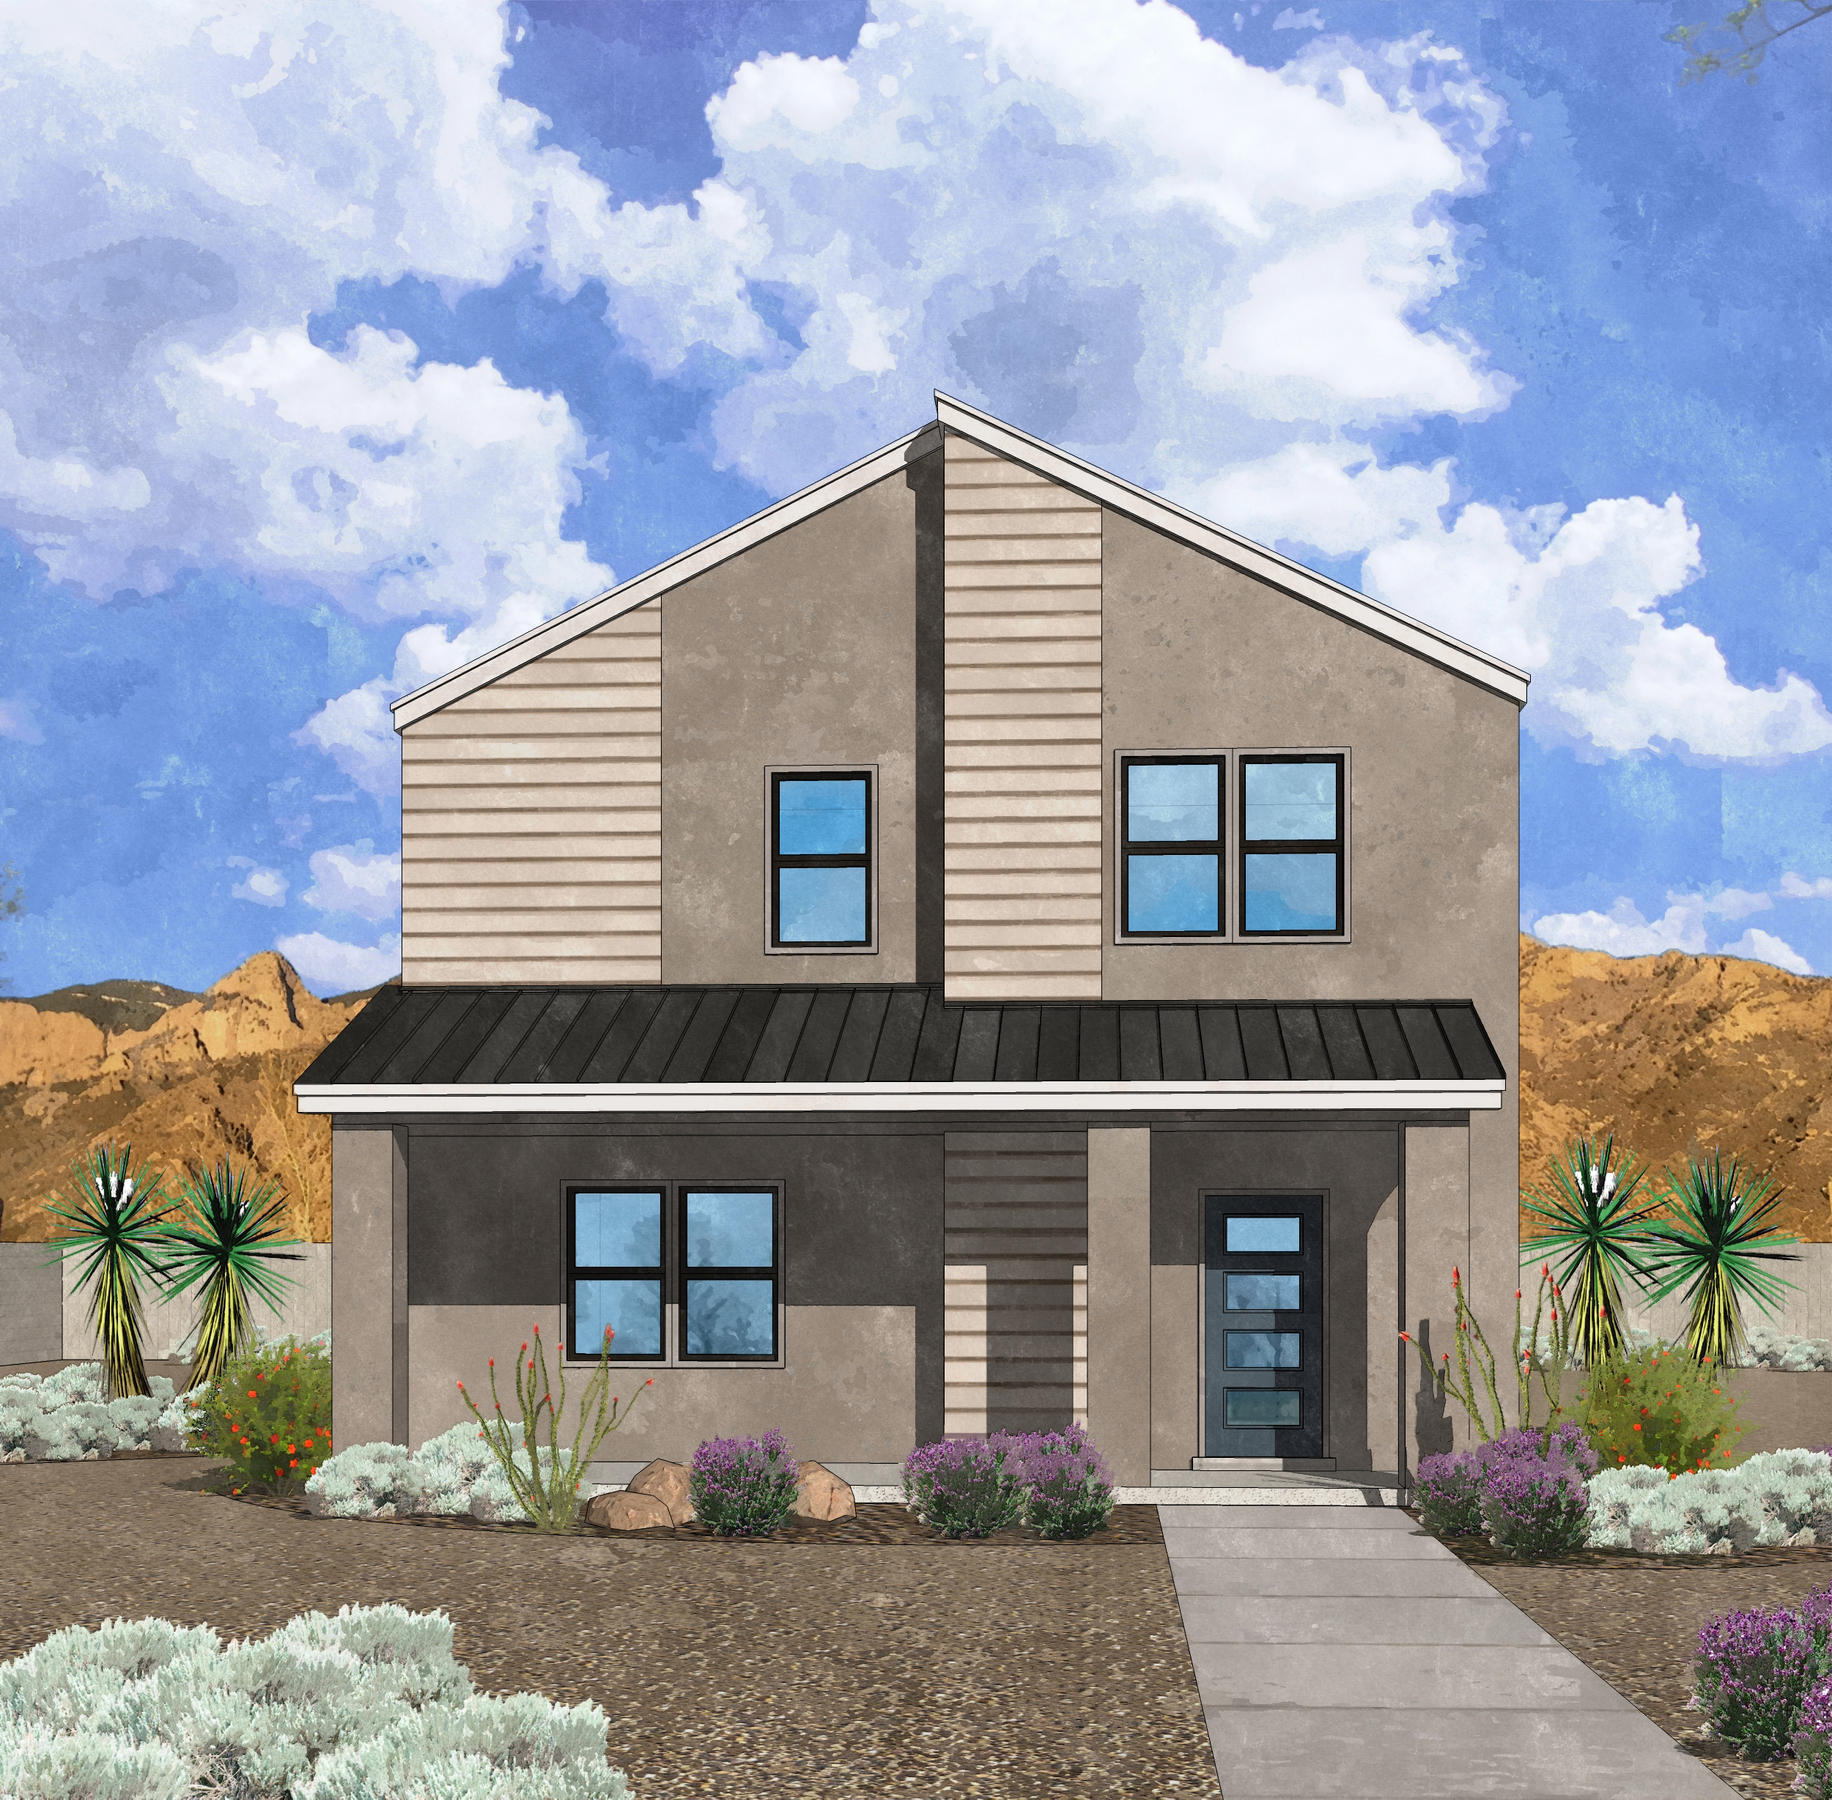 Westway Homes presents the Artisan Series, This floor plan, the Chimayo, is 2 story loaded with beautiful designer finishes. This home is a 3 bedroom, 2.5 bath with granite countertops and designer LVT flooring. Please visit the Westway Homes model in Mesa del Sol for more information. This home is under construction and will be complete in late April of 2021. Photos are of a different home, same floor plan and do not represent the color/finishes for this home.